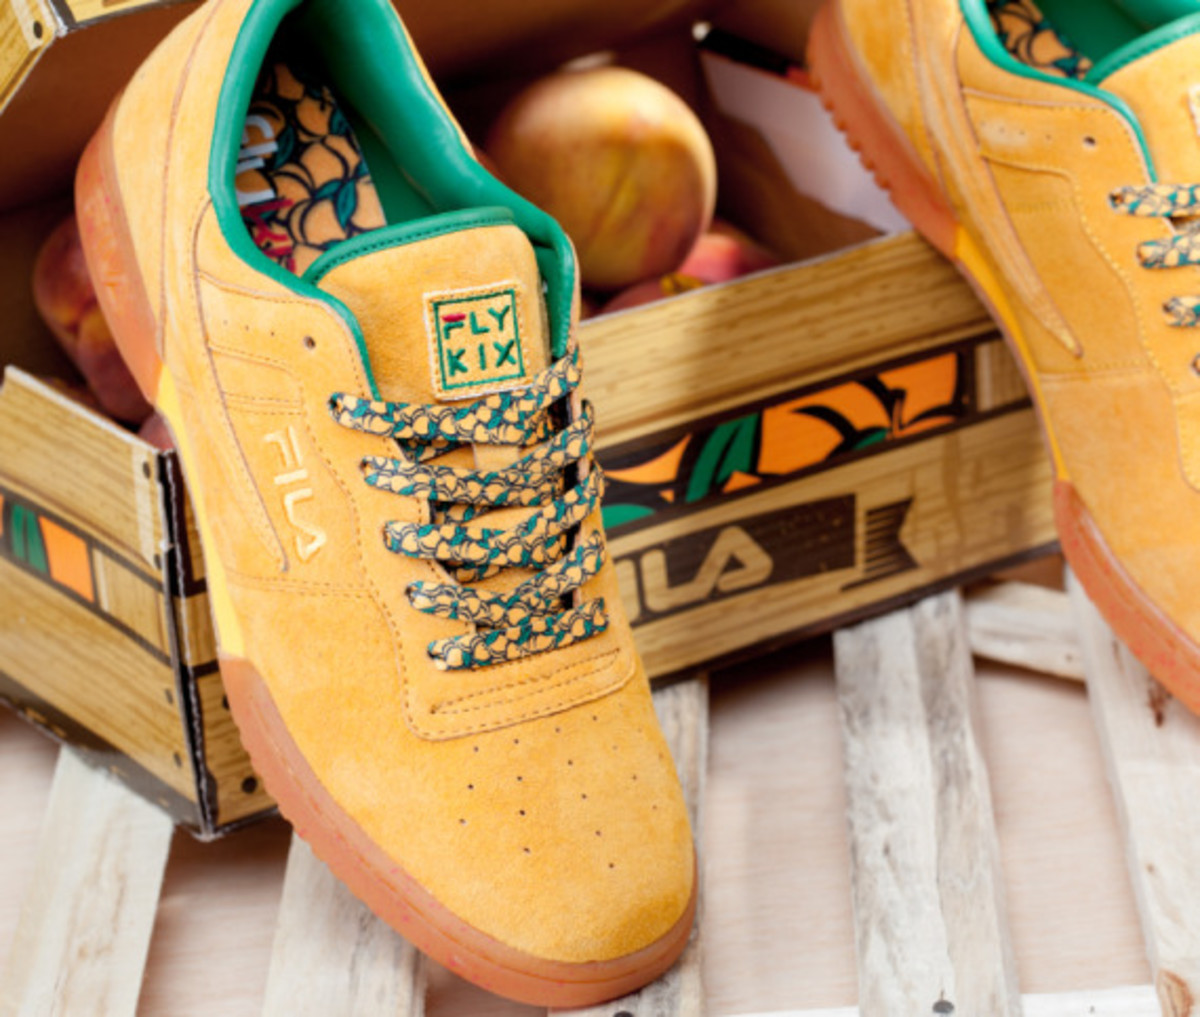 fly-kix-fila-original-fitness-peach-state-04